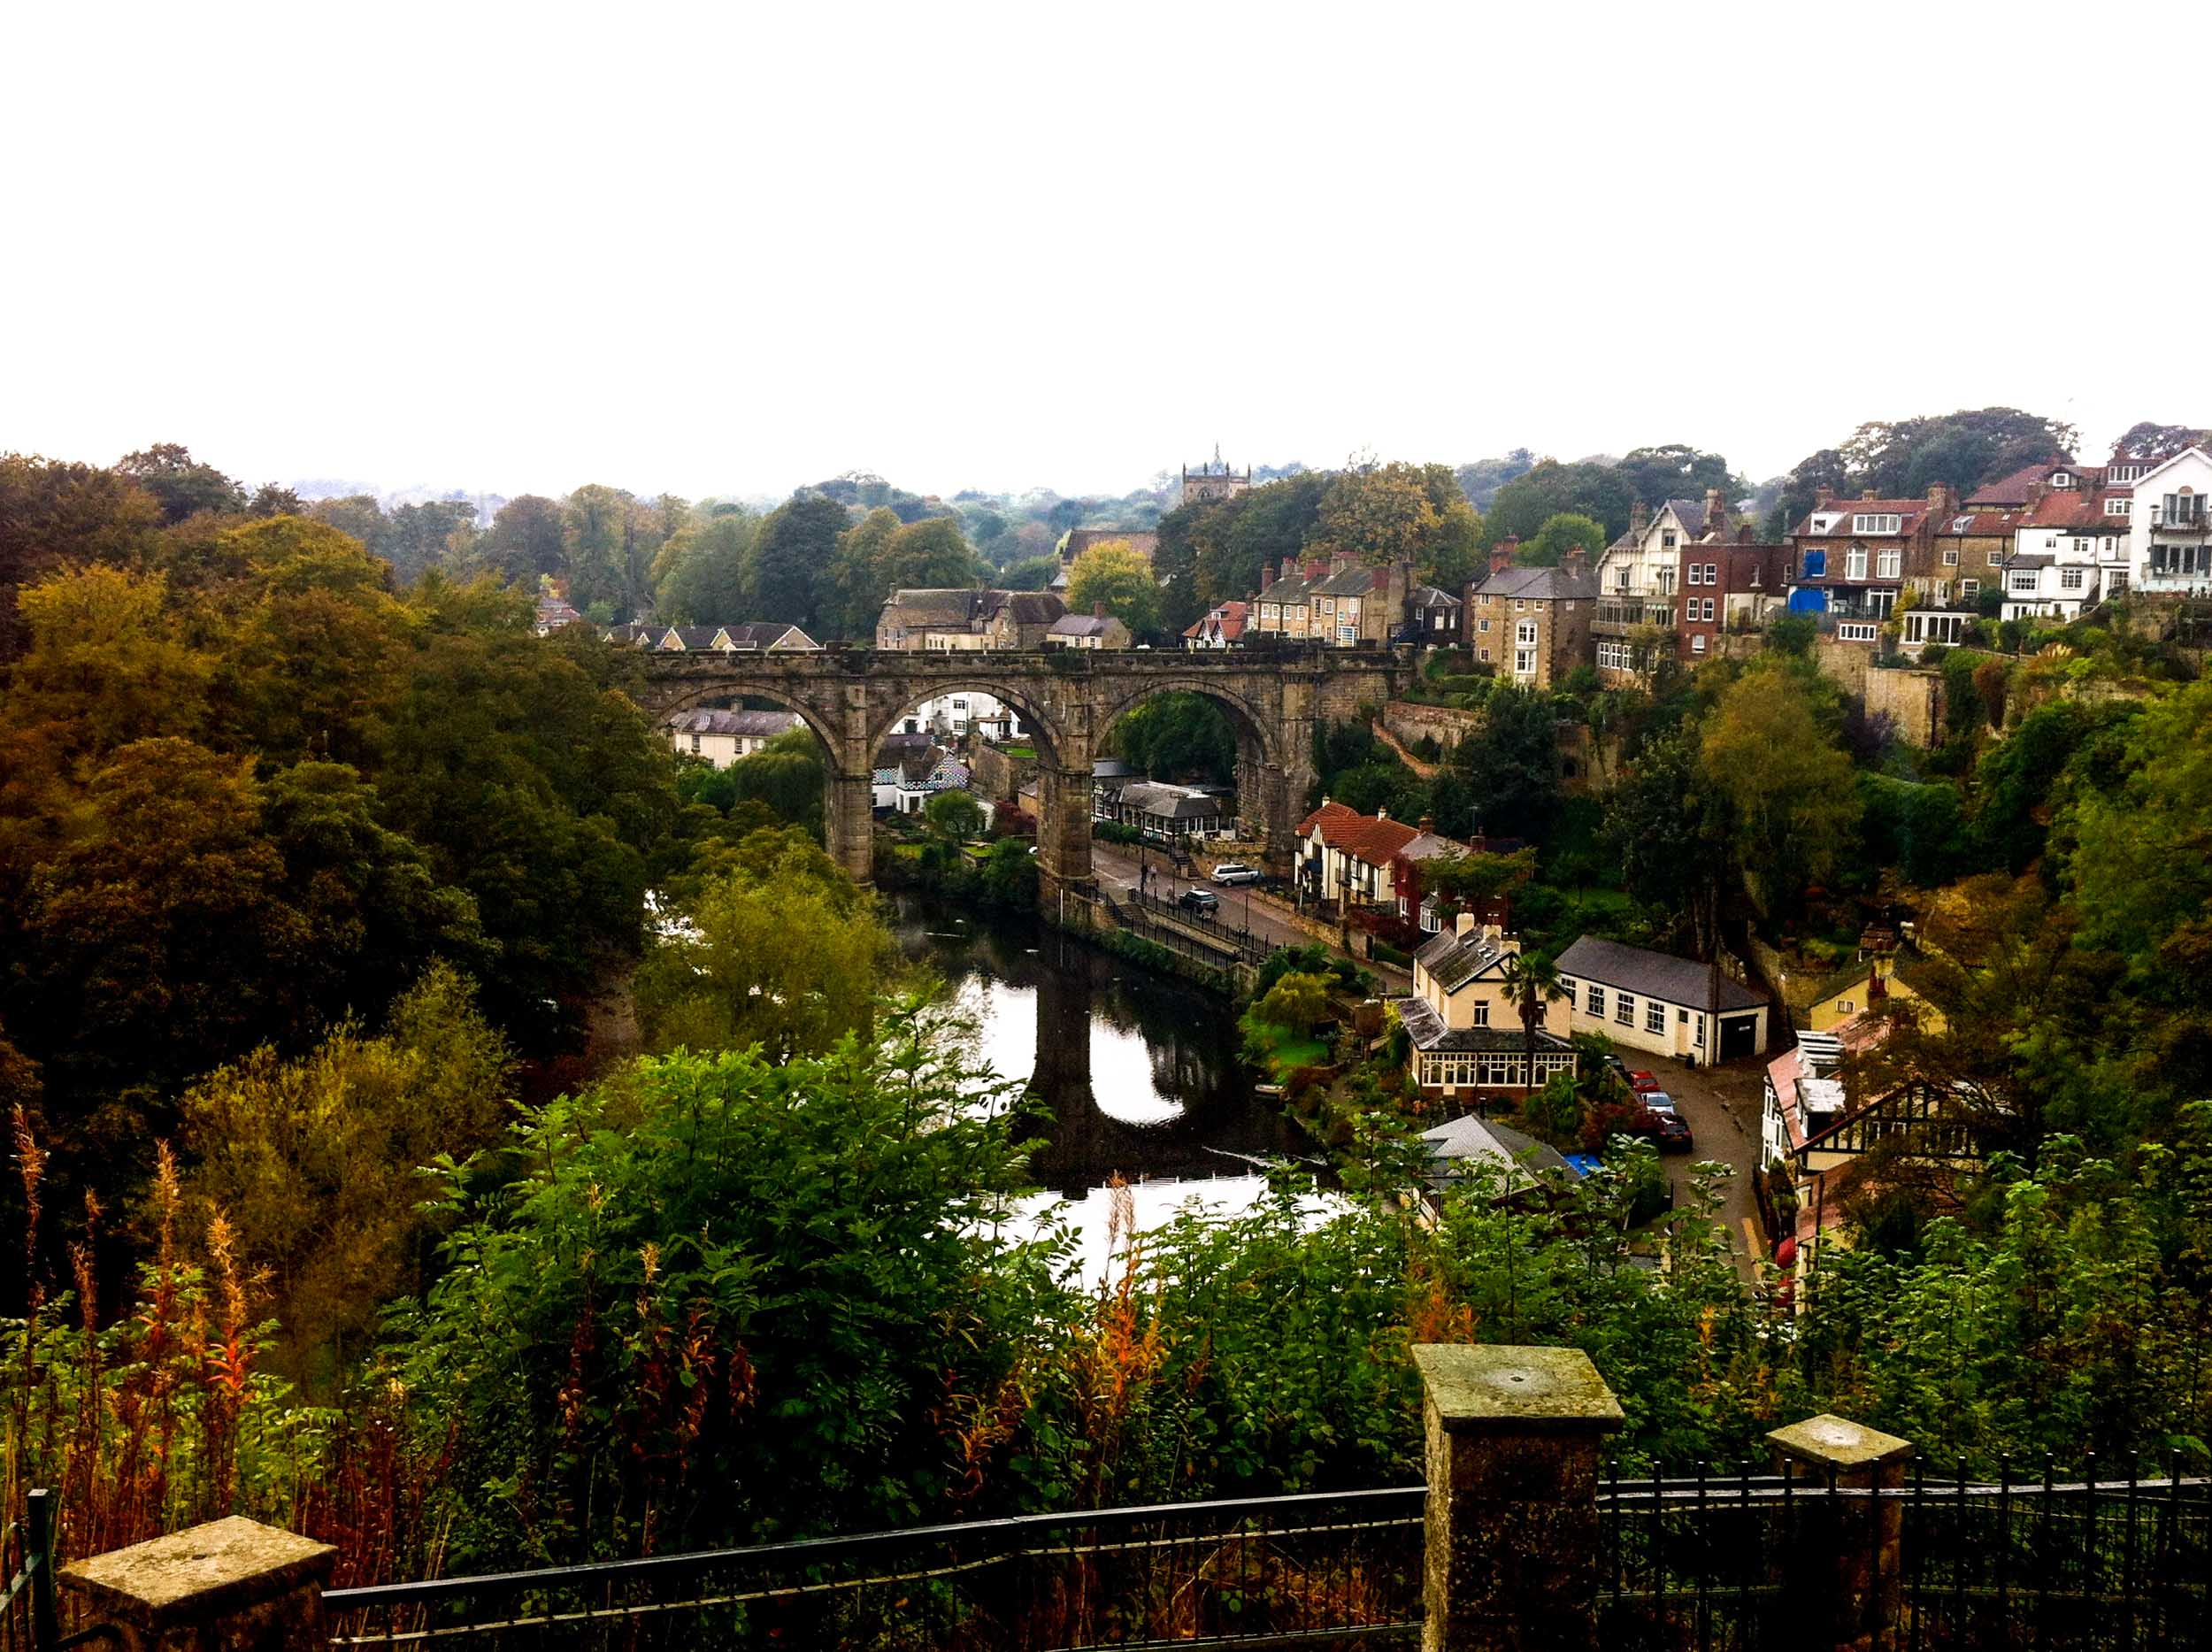 The picturesque Knaresborough viaduct in North Yorkshire, England.